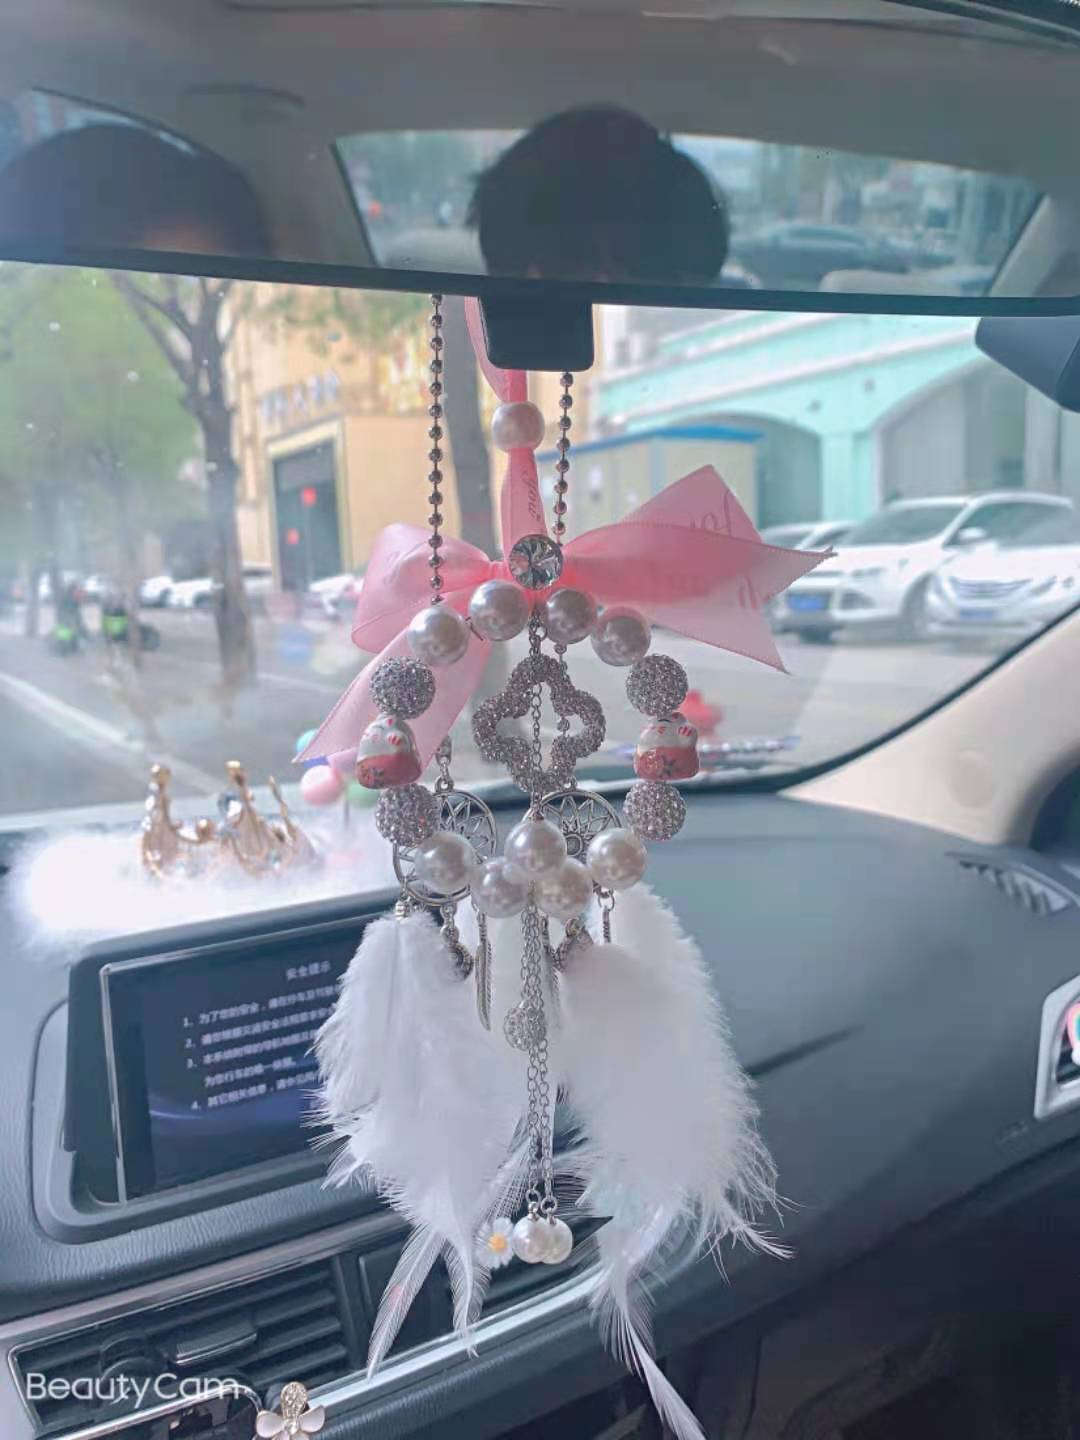 Creative Beaded Car Hanging Decor for Gift on Special Occasions